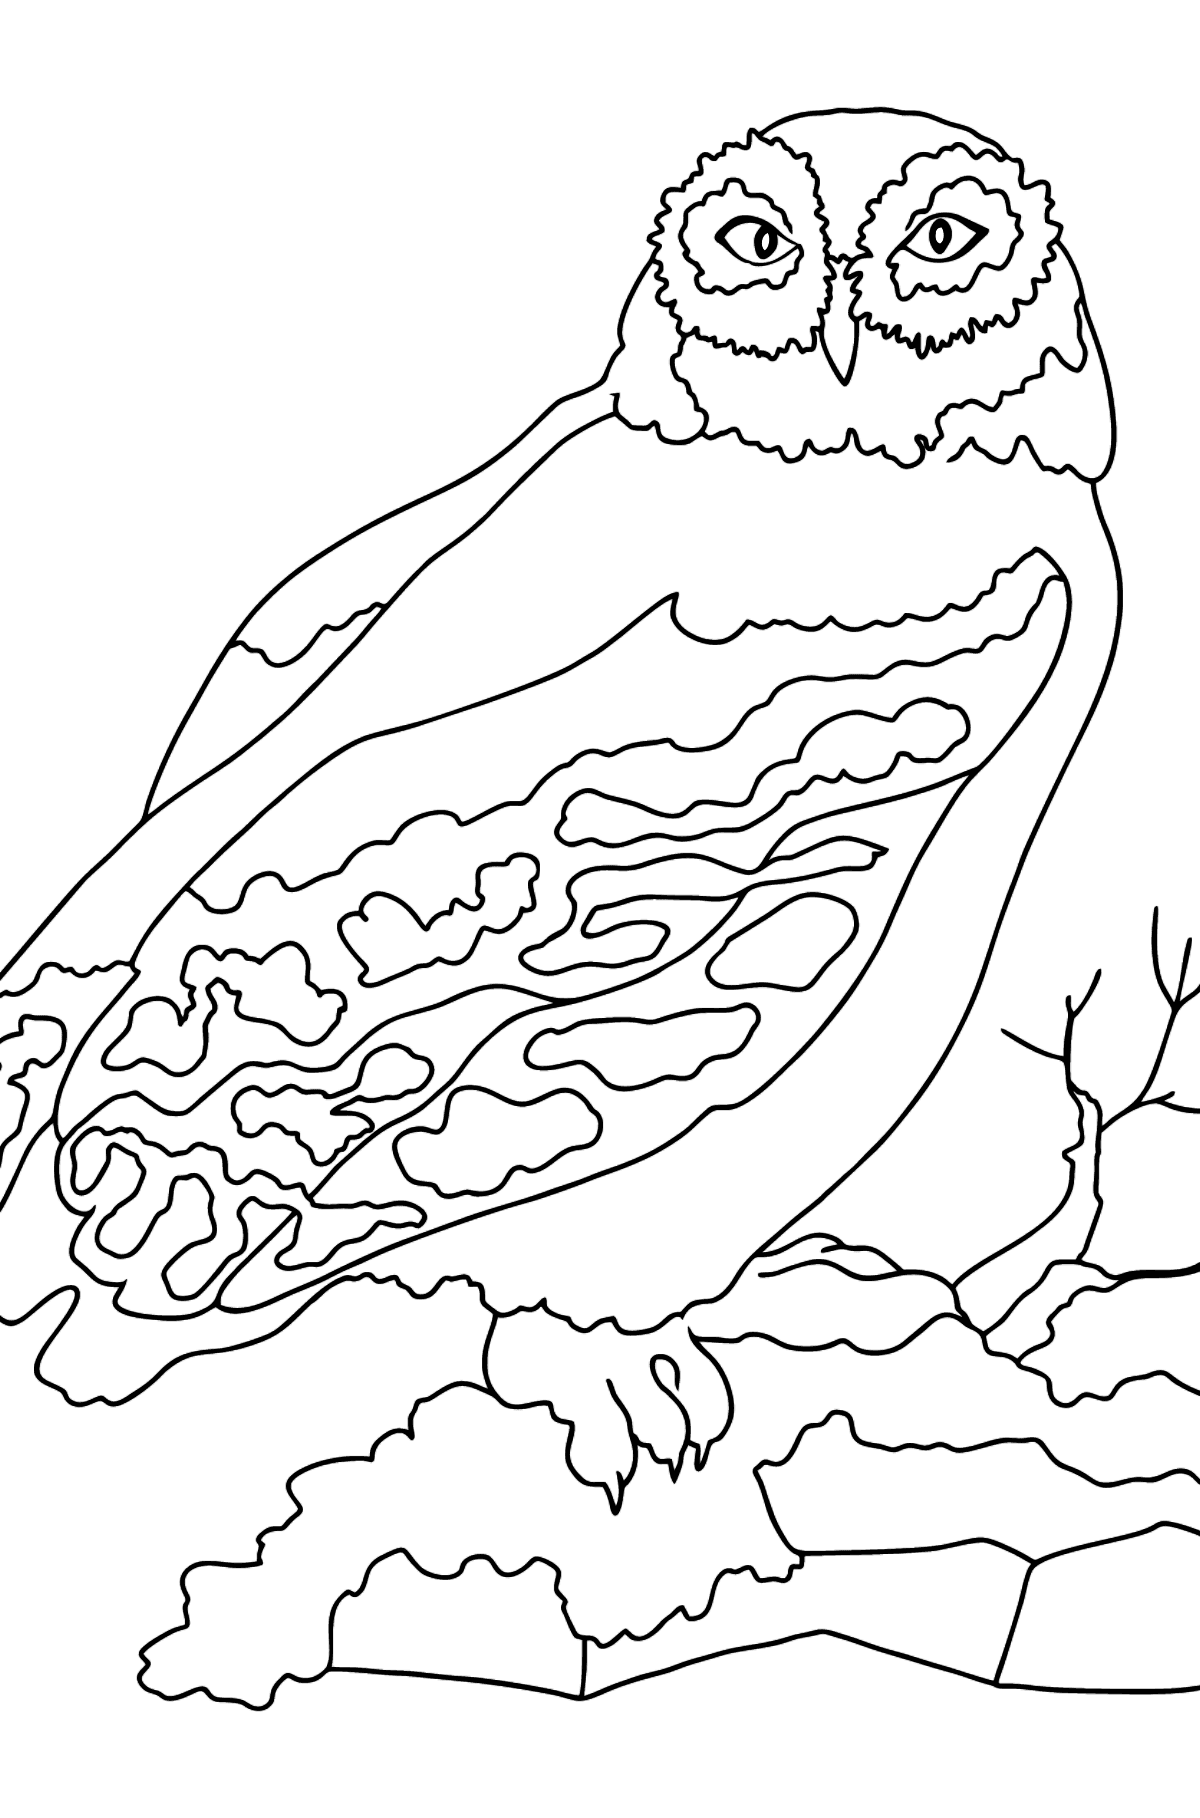 Coloring Page - An Owl on a Hunt - Coloring Pages for Kids